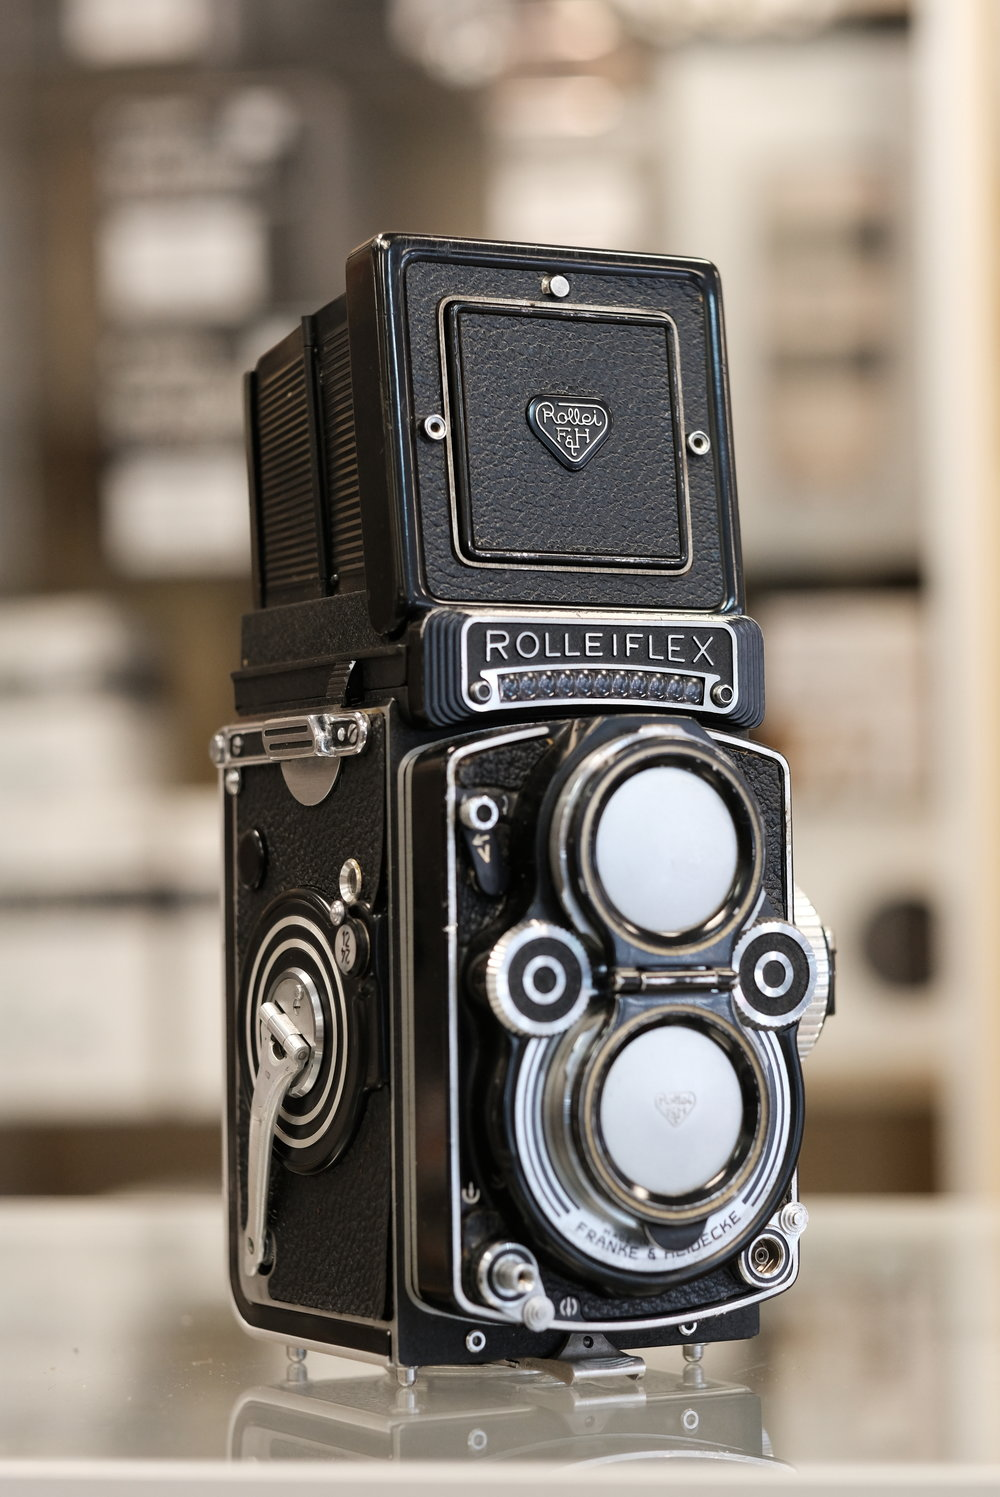 Rolleiflex 3.5F & Accessories - This classic twin lens, medium format camera is in great condition with only a few cosmetic flaws. The meter is non-reliable, but that is expected with any decades old selenium meter and can be overcome with one of the free light meter apps for your smart phone. This camera comes complete with a brown leather case, set of 3 Rolleinar close up lenses and the original owner's manual, all of which are in remarkably good shape.Price: $650